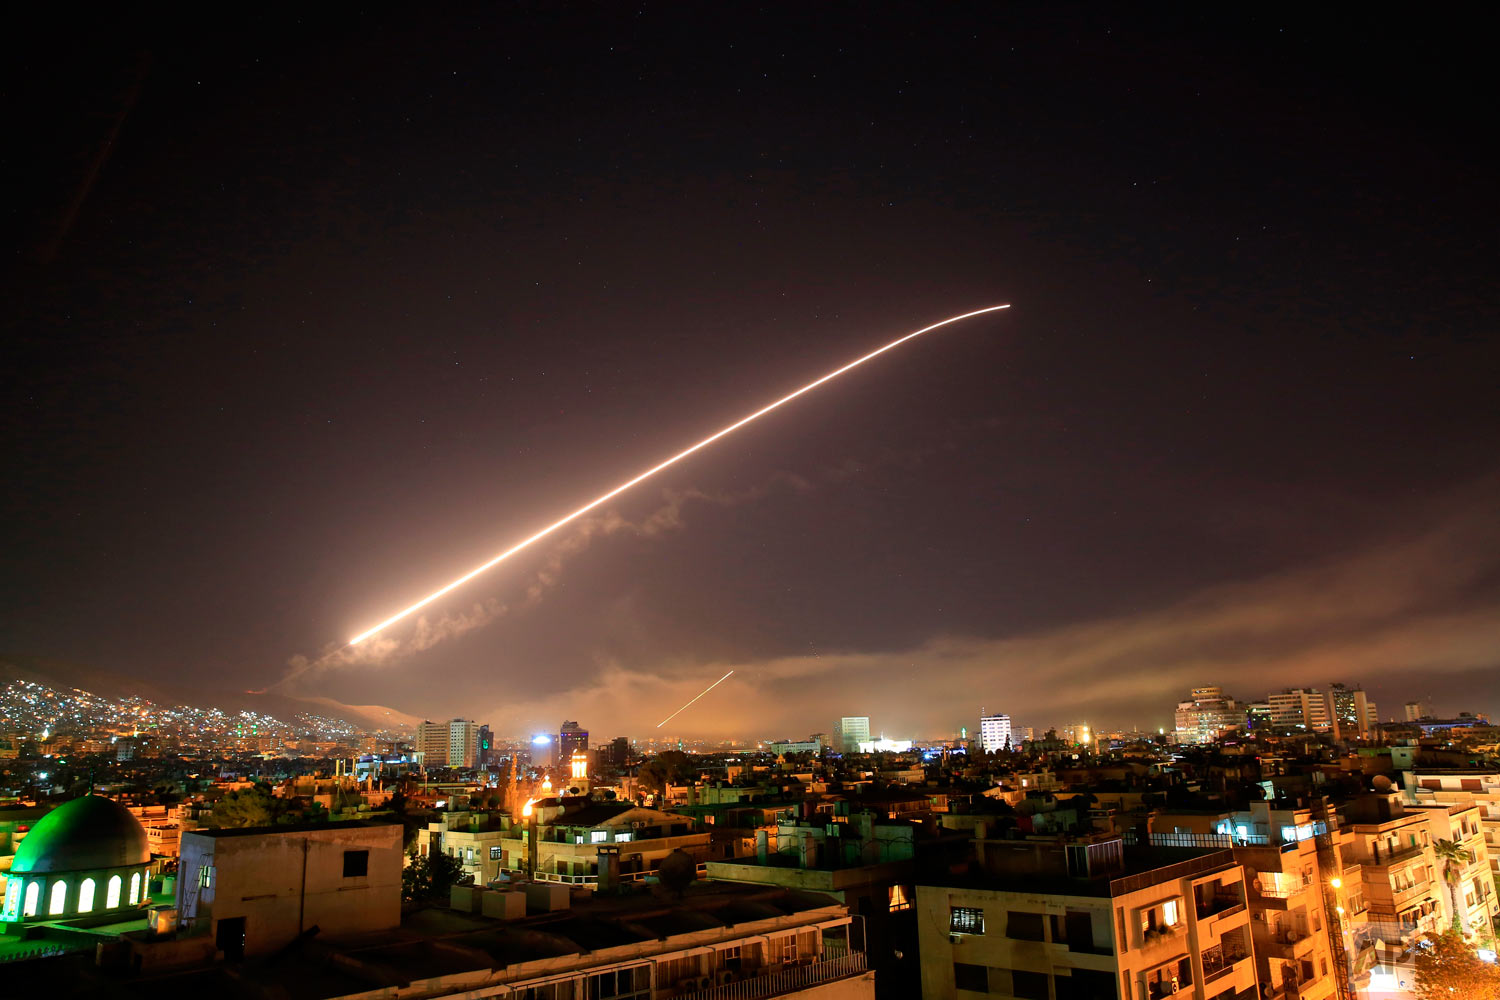 The Damascus sky lights up missile fire as the U.S. launches an attack on Syria targeting different parts of the capital early Saturday, April 14, 2018. Syria's capital has been rocked by loud explosions that lit up the sky with heavy smoke as U.S. President Donald Trump announced airstrikes in retaliation for the country's alleged use of chemical weapons. (AP Photo/Hassan Ammar)